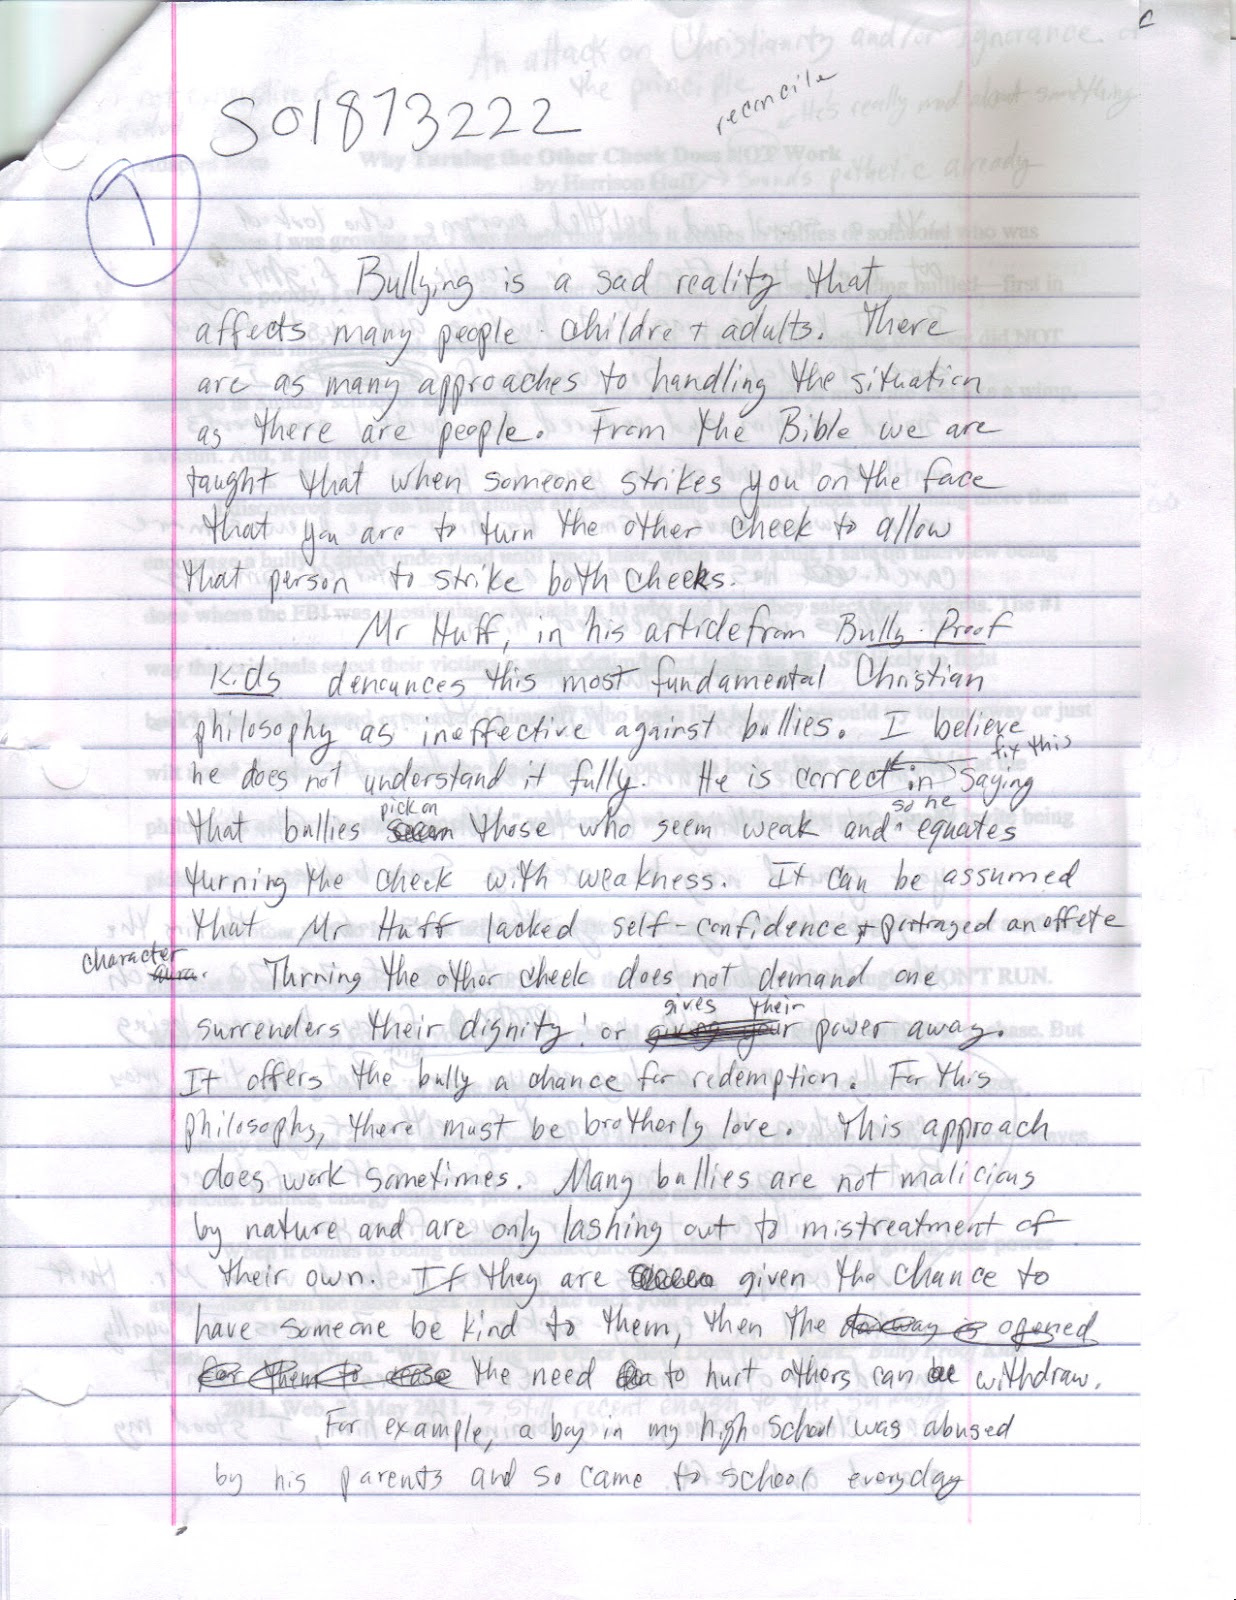 narrative essay on bullying narrative essay bullying mighty peace golf club